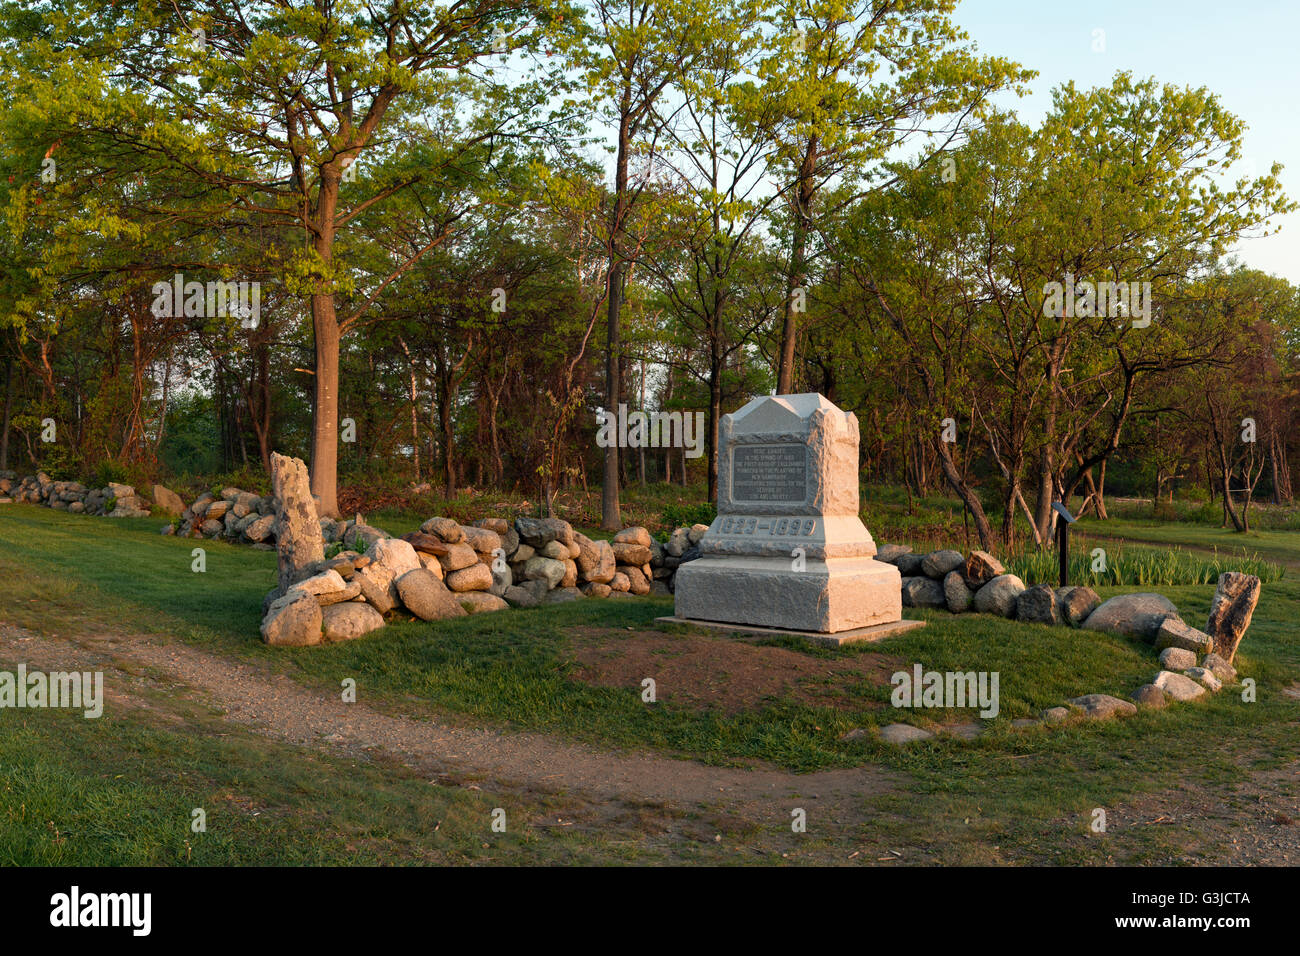 Odiorne Point State Park in Rye NH, site of first European settlers on New Hampshire seacoast - Stock Image